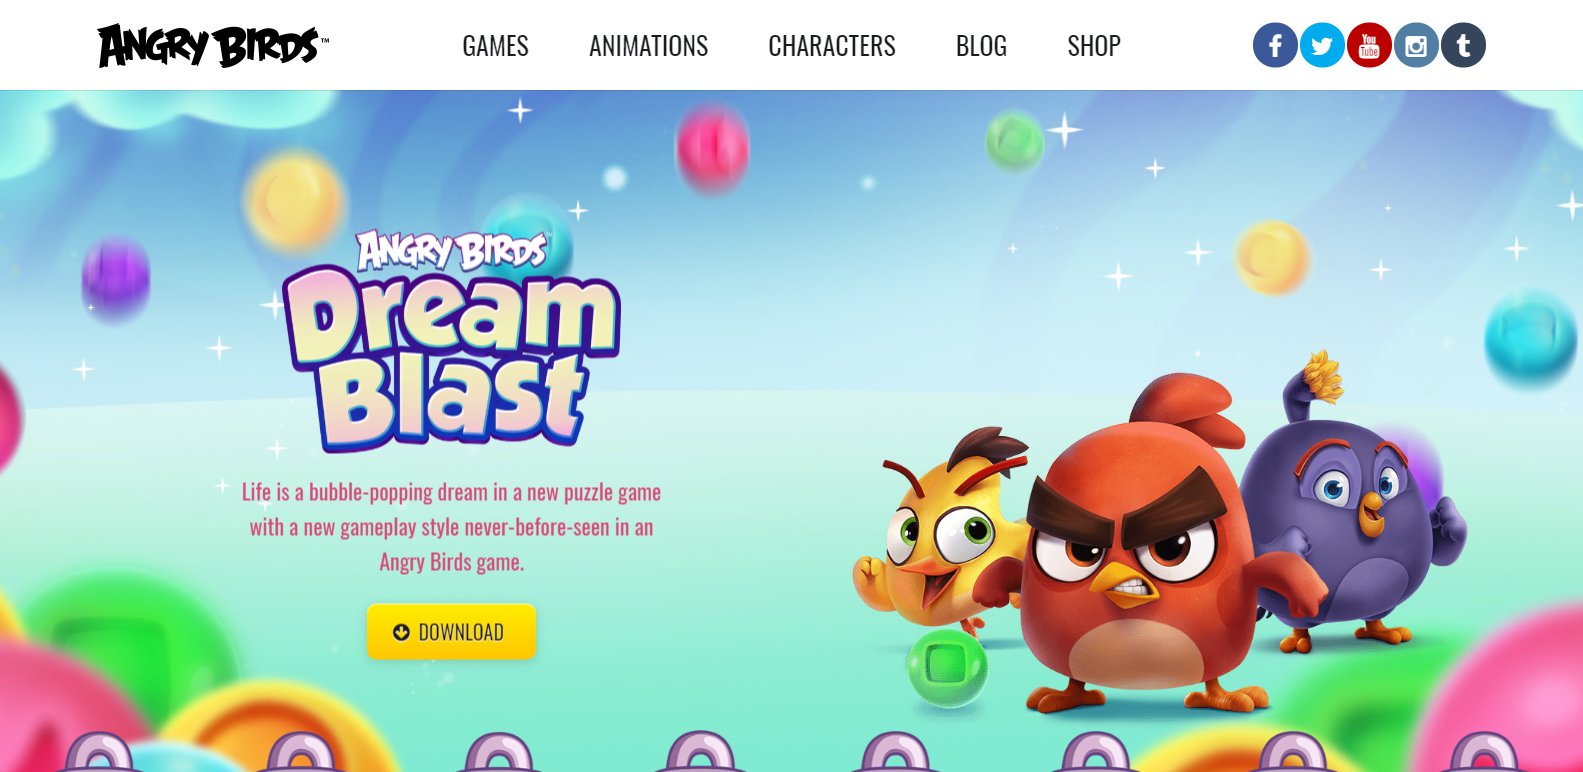 image of angry birds wordpress websites